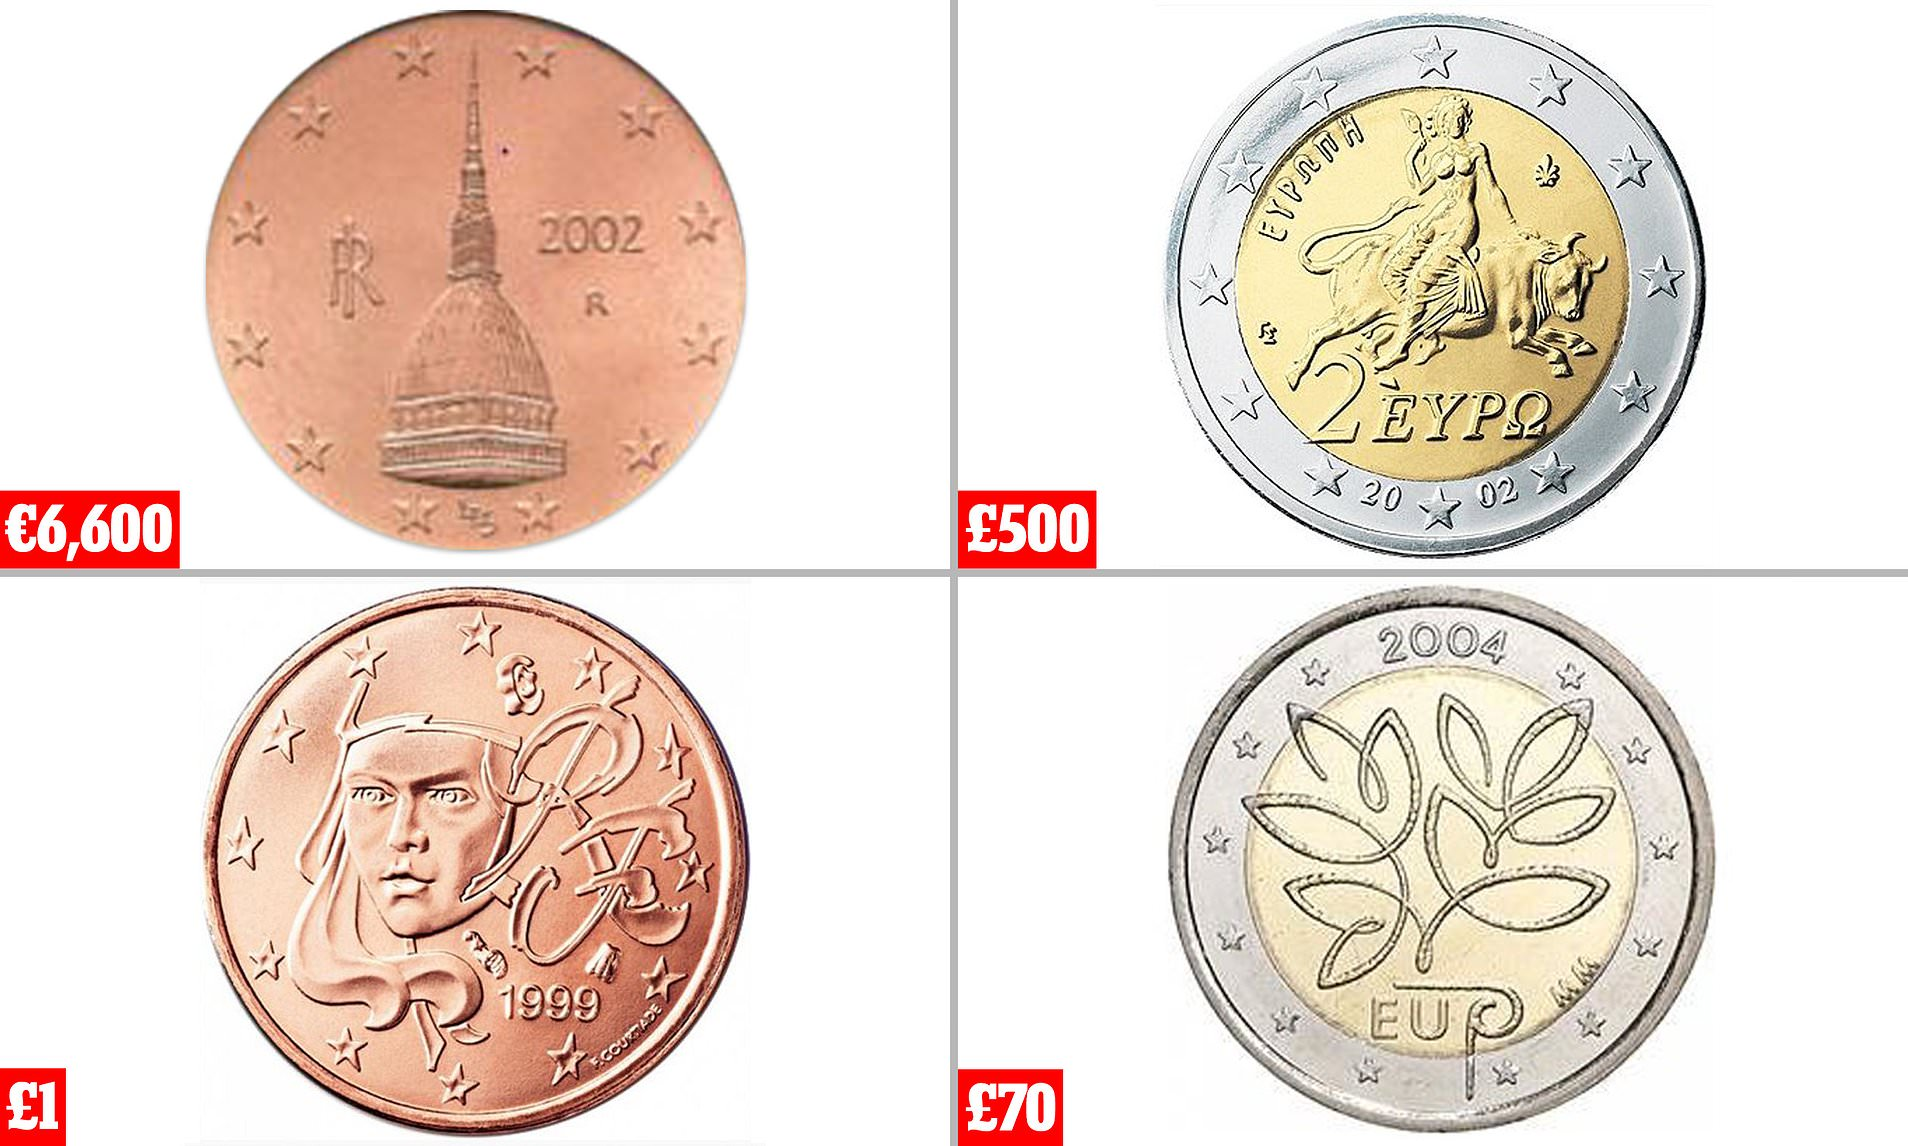 1 Libra Euros Rare Euro Coins That Can Turn Up In Your Change While On Your